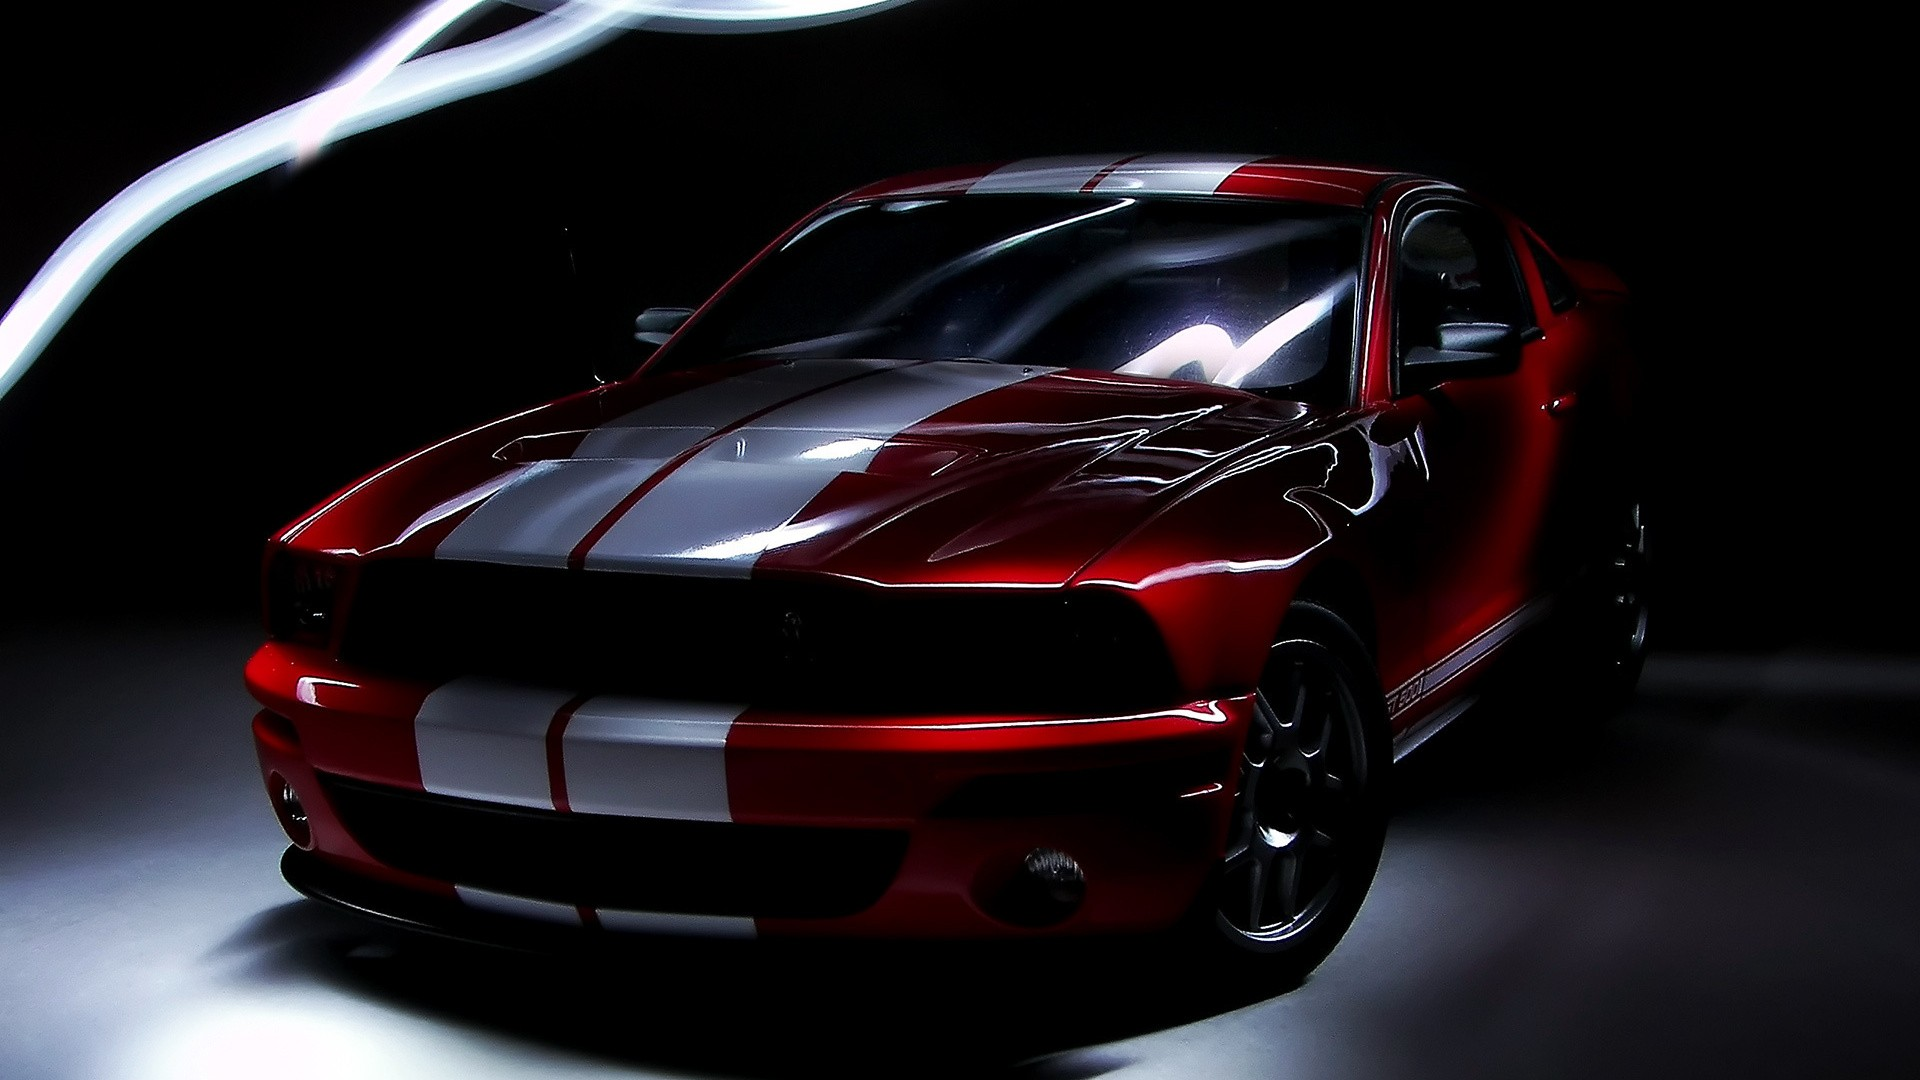 Ford Mustang Shelby GT500 HD Wallpaper   HD 1920x1080